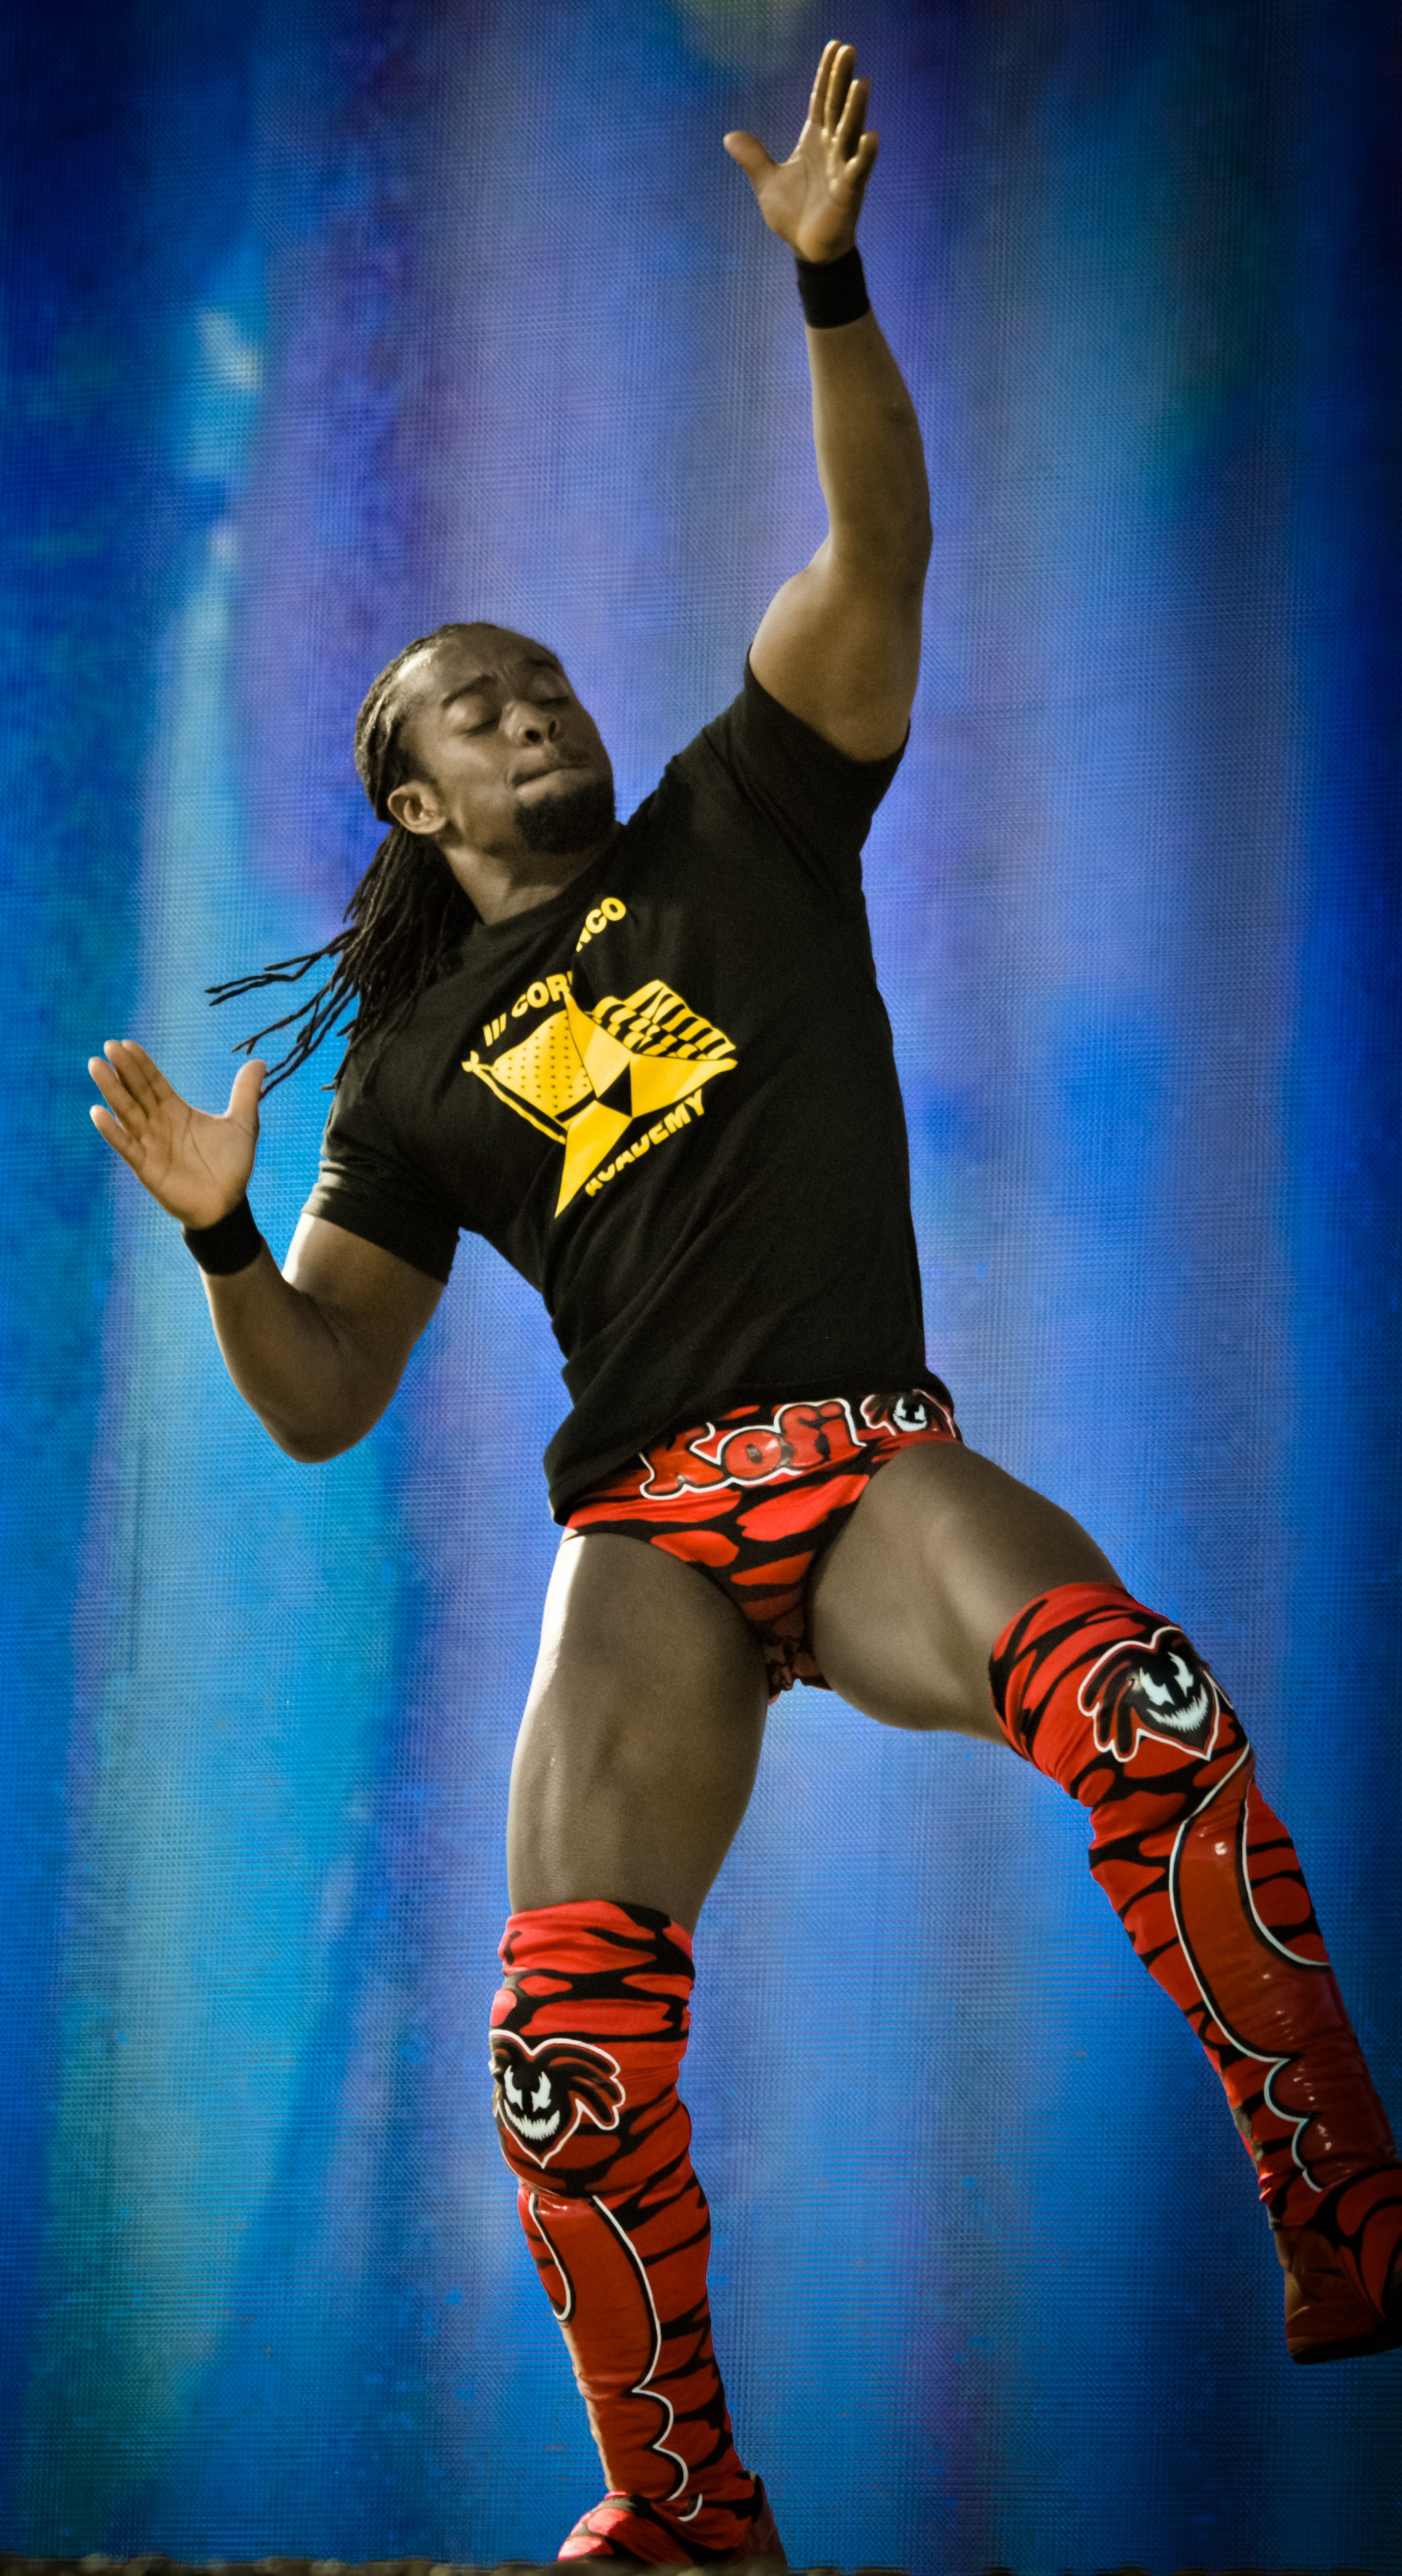 http://upload.wikimedia.org/wikipedia/commons/4/44/Kofi_Kingston_in_2010.jpg